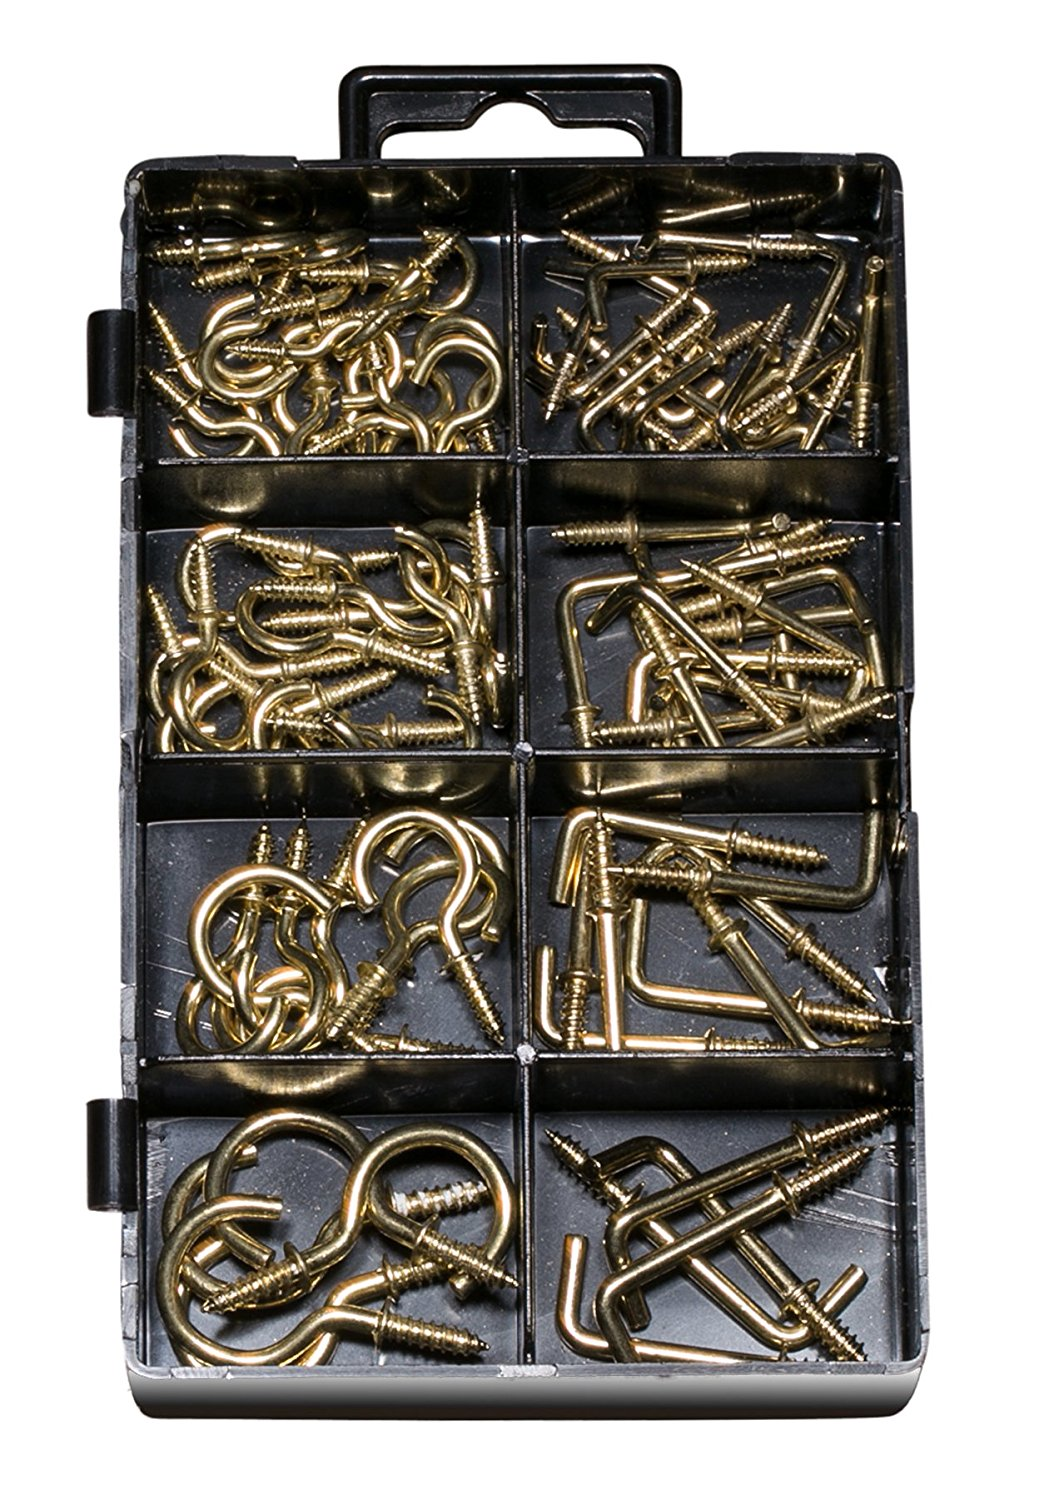 """90 Pieces Cup Hooks Assortment Kit, Hook for Cups, Ceiling, Mobiles, Wind Chimes, Lanterns and More, Cup Hook 3/8"""" - 6/8"""", Square Hooks 1/2"""" – 1""""."""